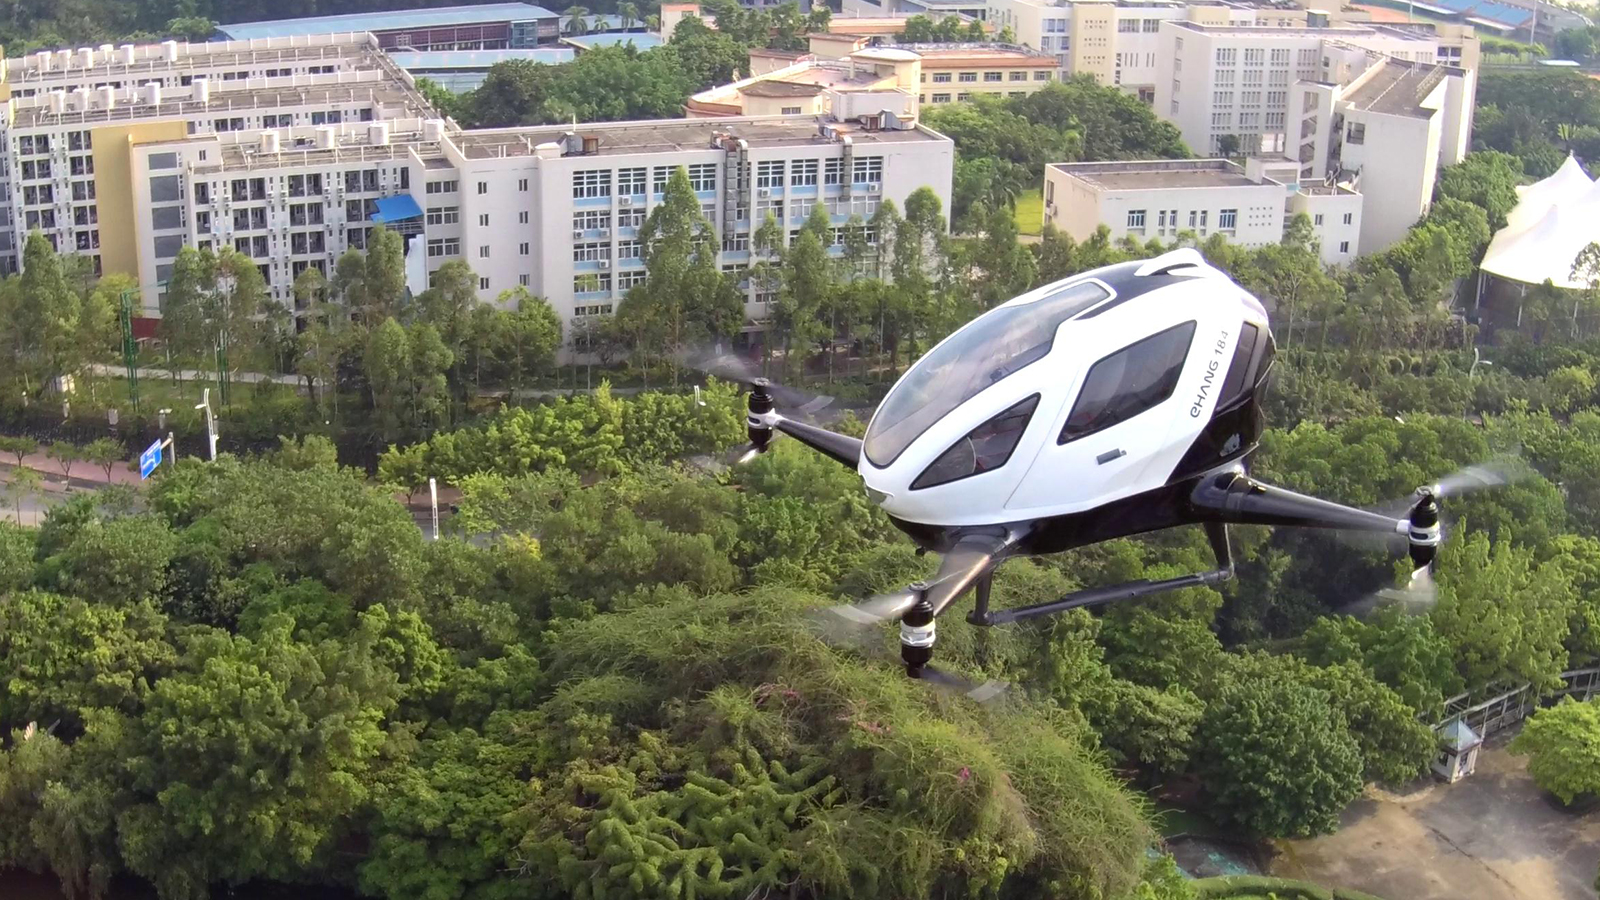 Flight Tests of EHang 184 AAV at Guangzhou in 2017